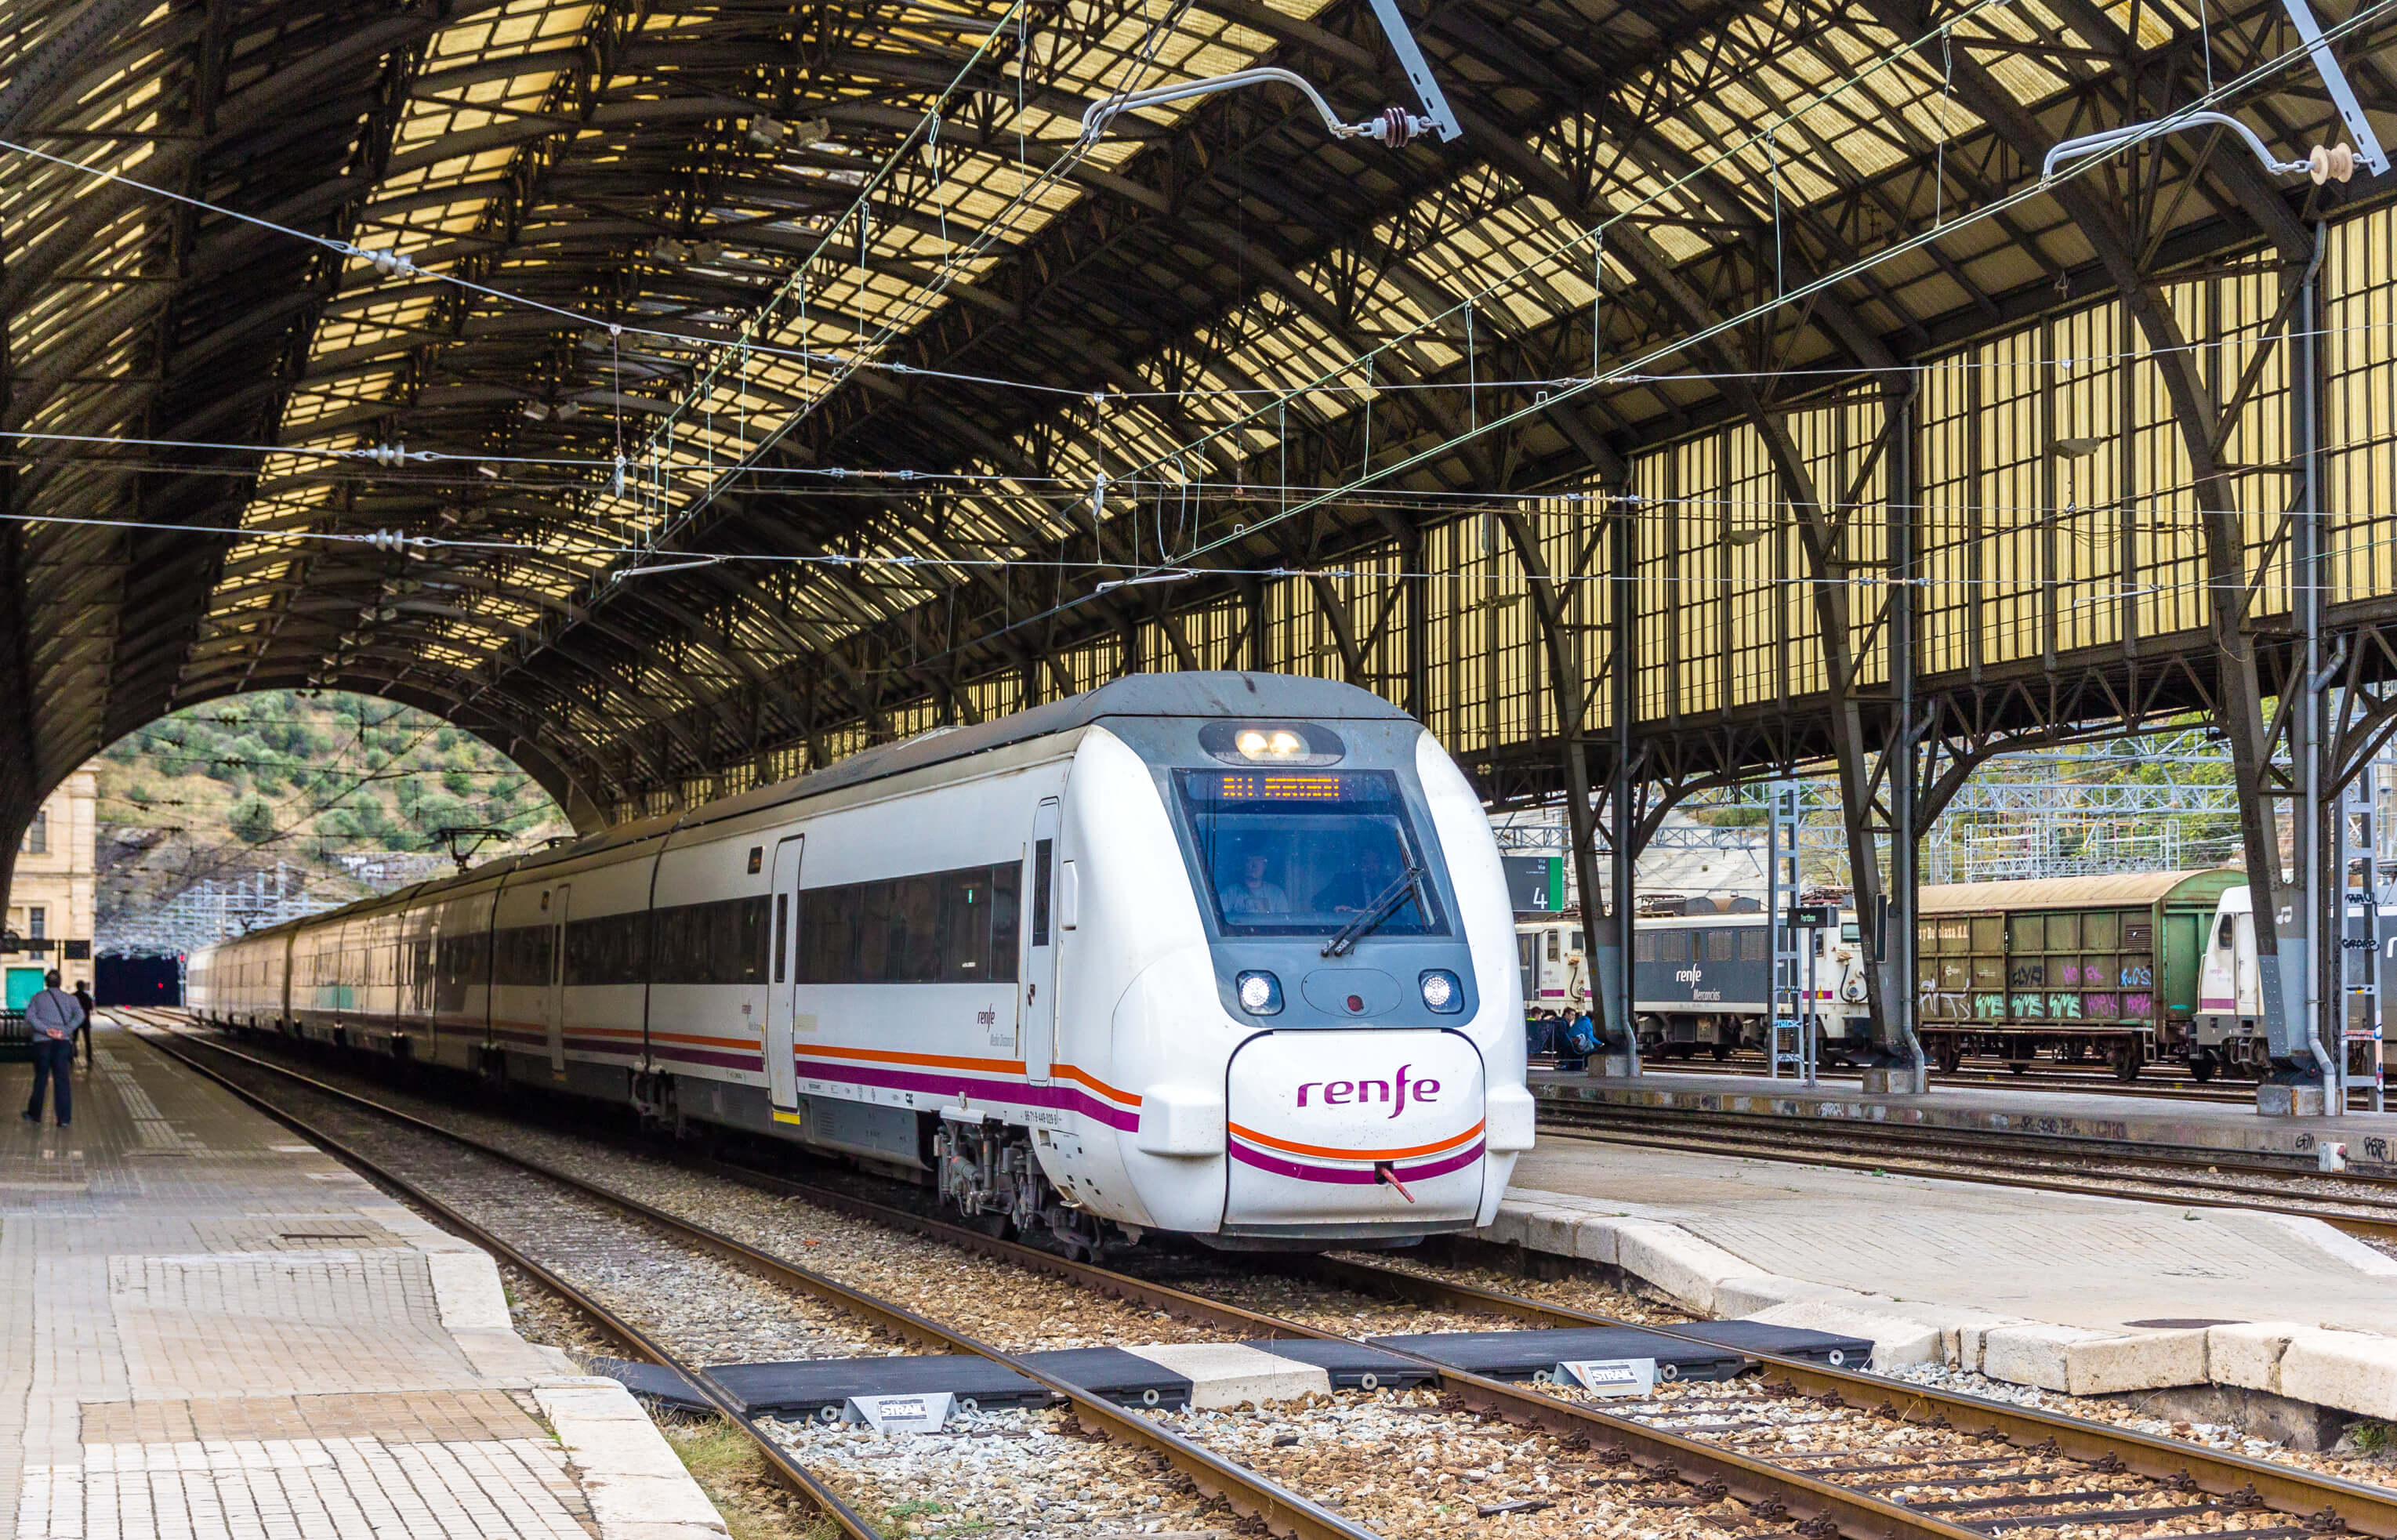 10 Travel Tips You Need to Know Before You Visit Spain - Renfe Train